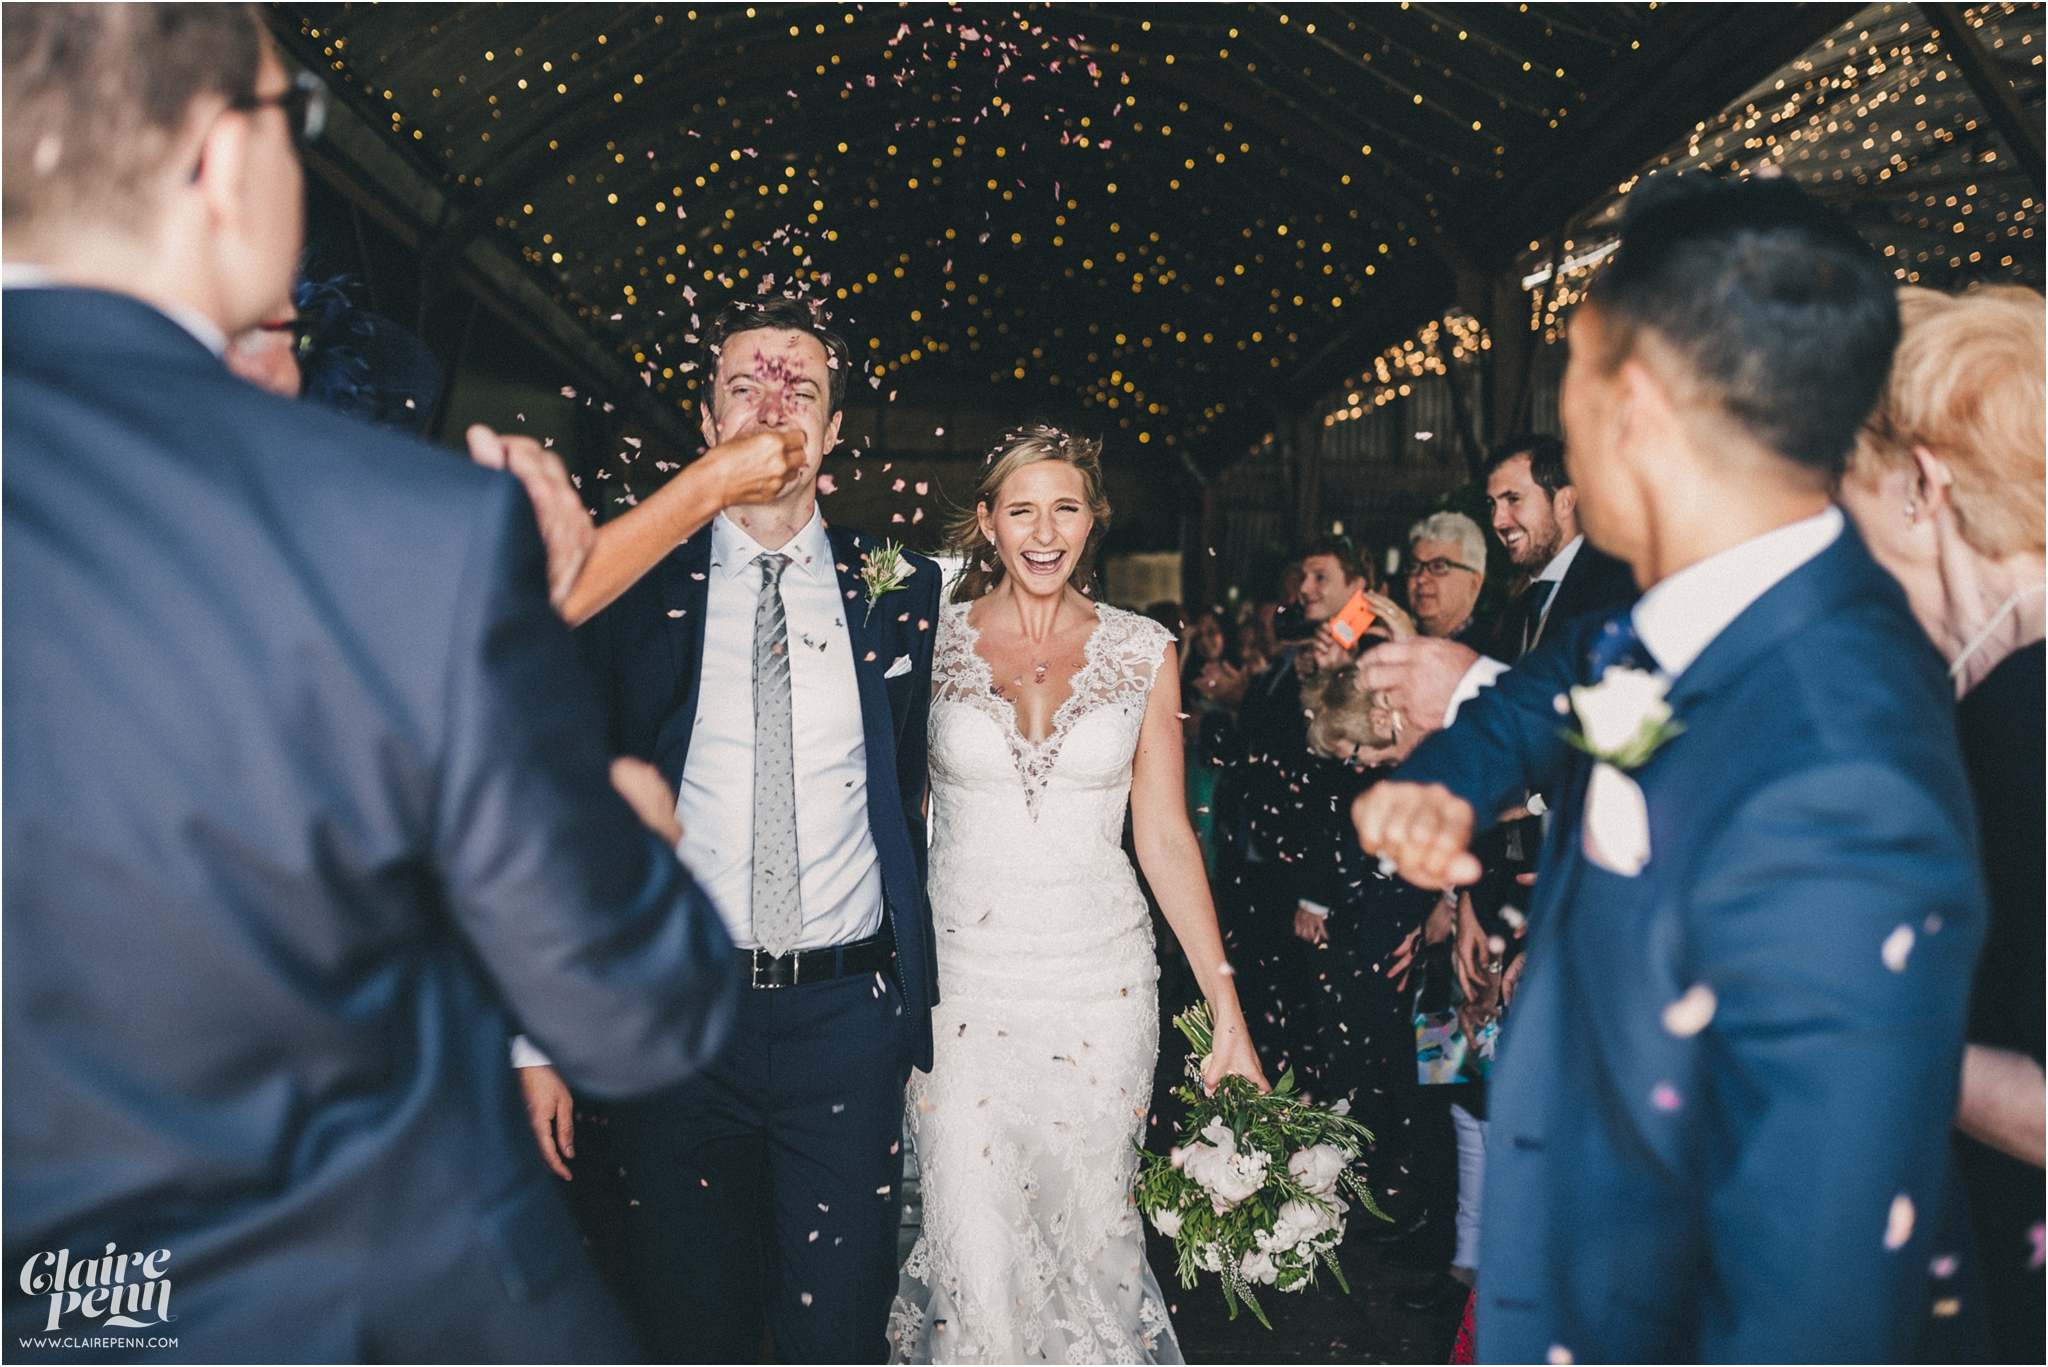 Cripps Stone Barn wedding Cheltenham Cotswolds_0020.jpg